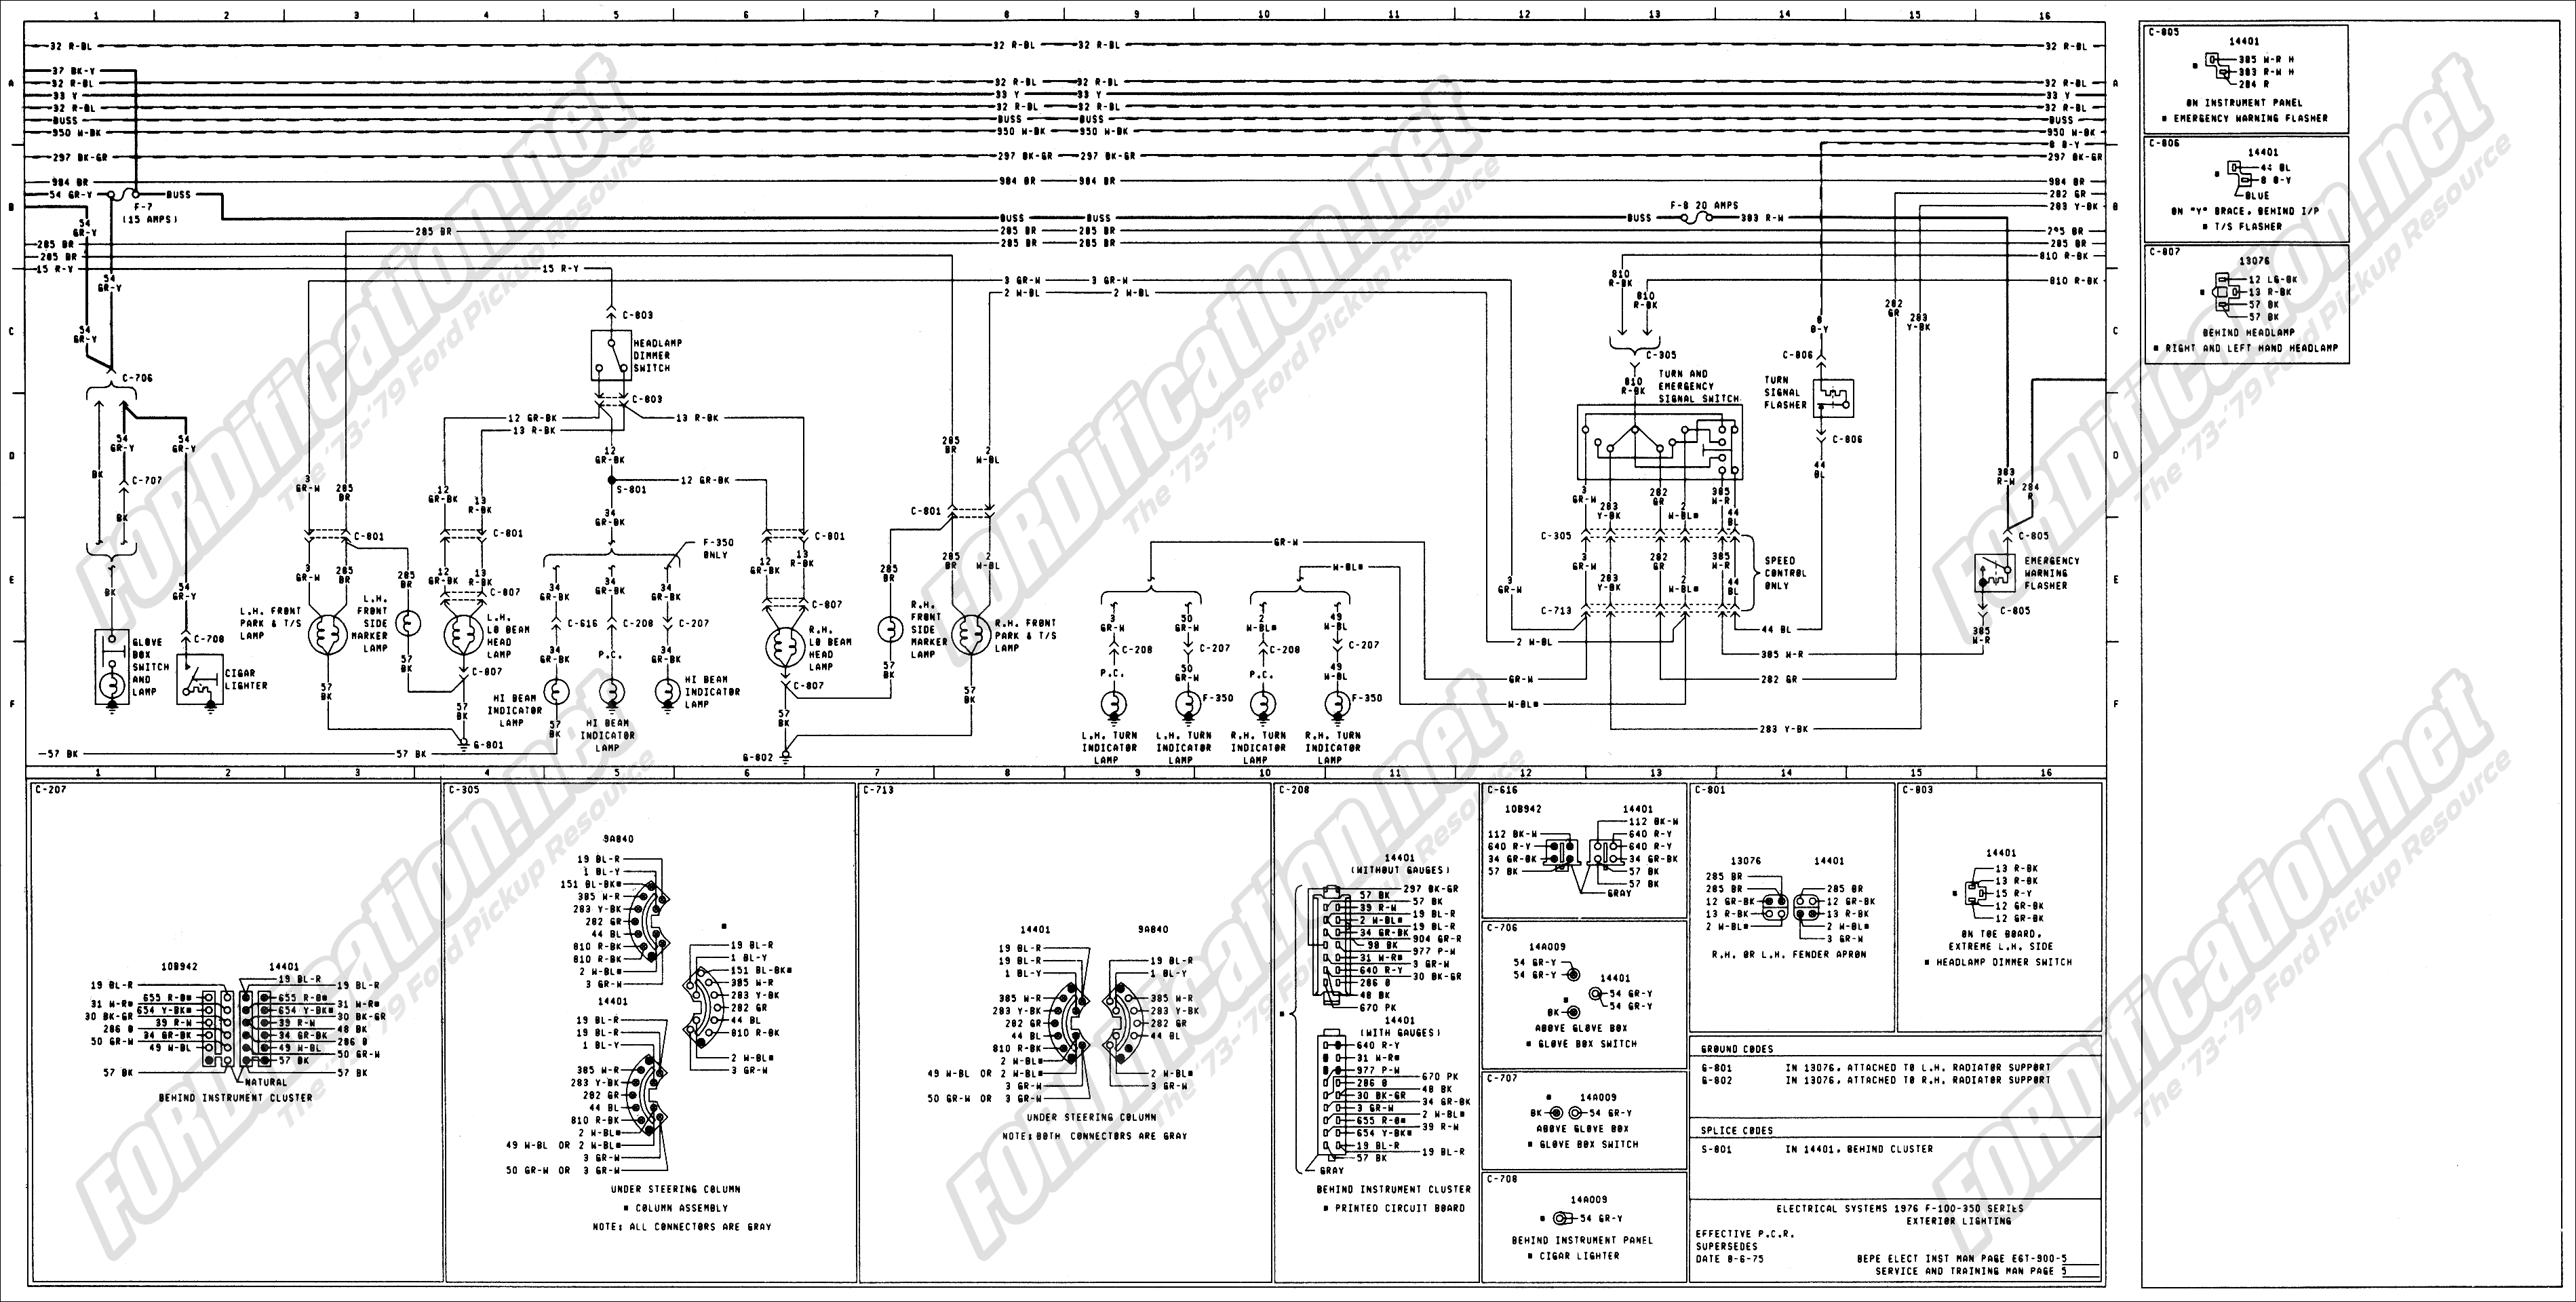 1973 1979 ford truck wiring diagrams schematics fordification net rh fordification net 1976 Ford Camper Van 1975 Ford Van